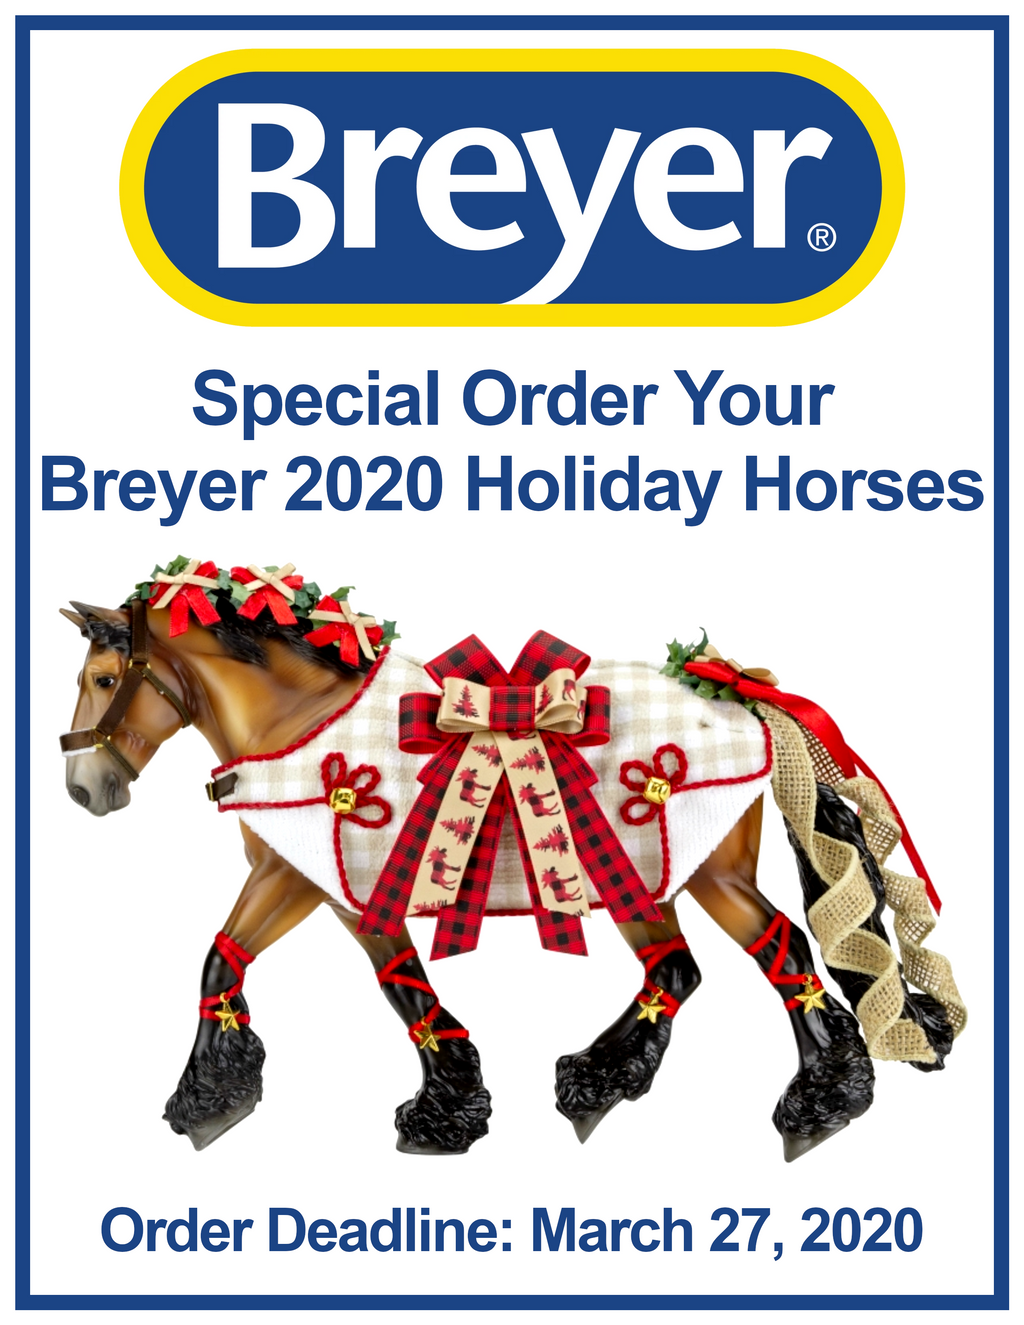 Special Order Your Breyer 2020 Holiday Horses